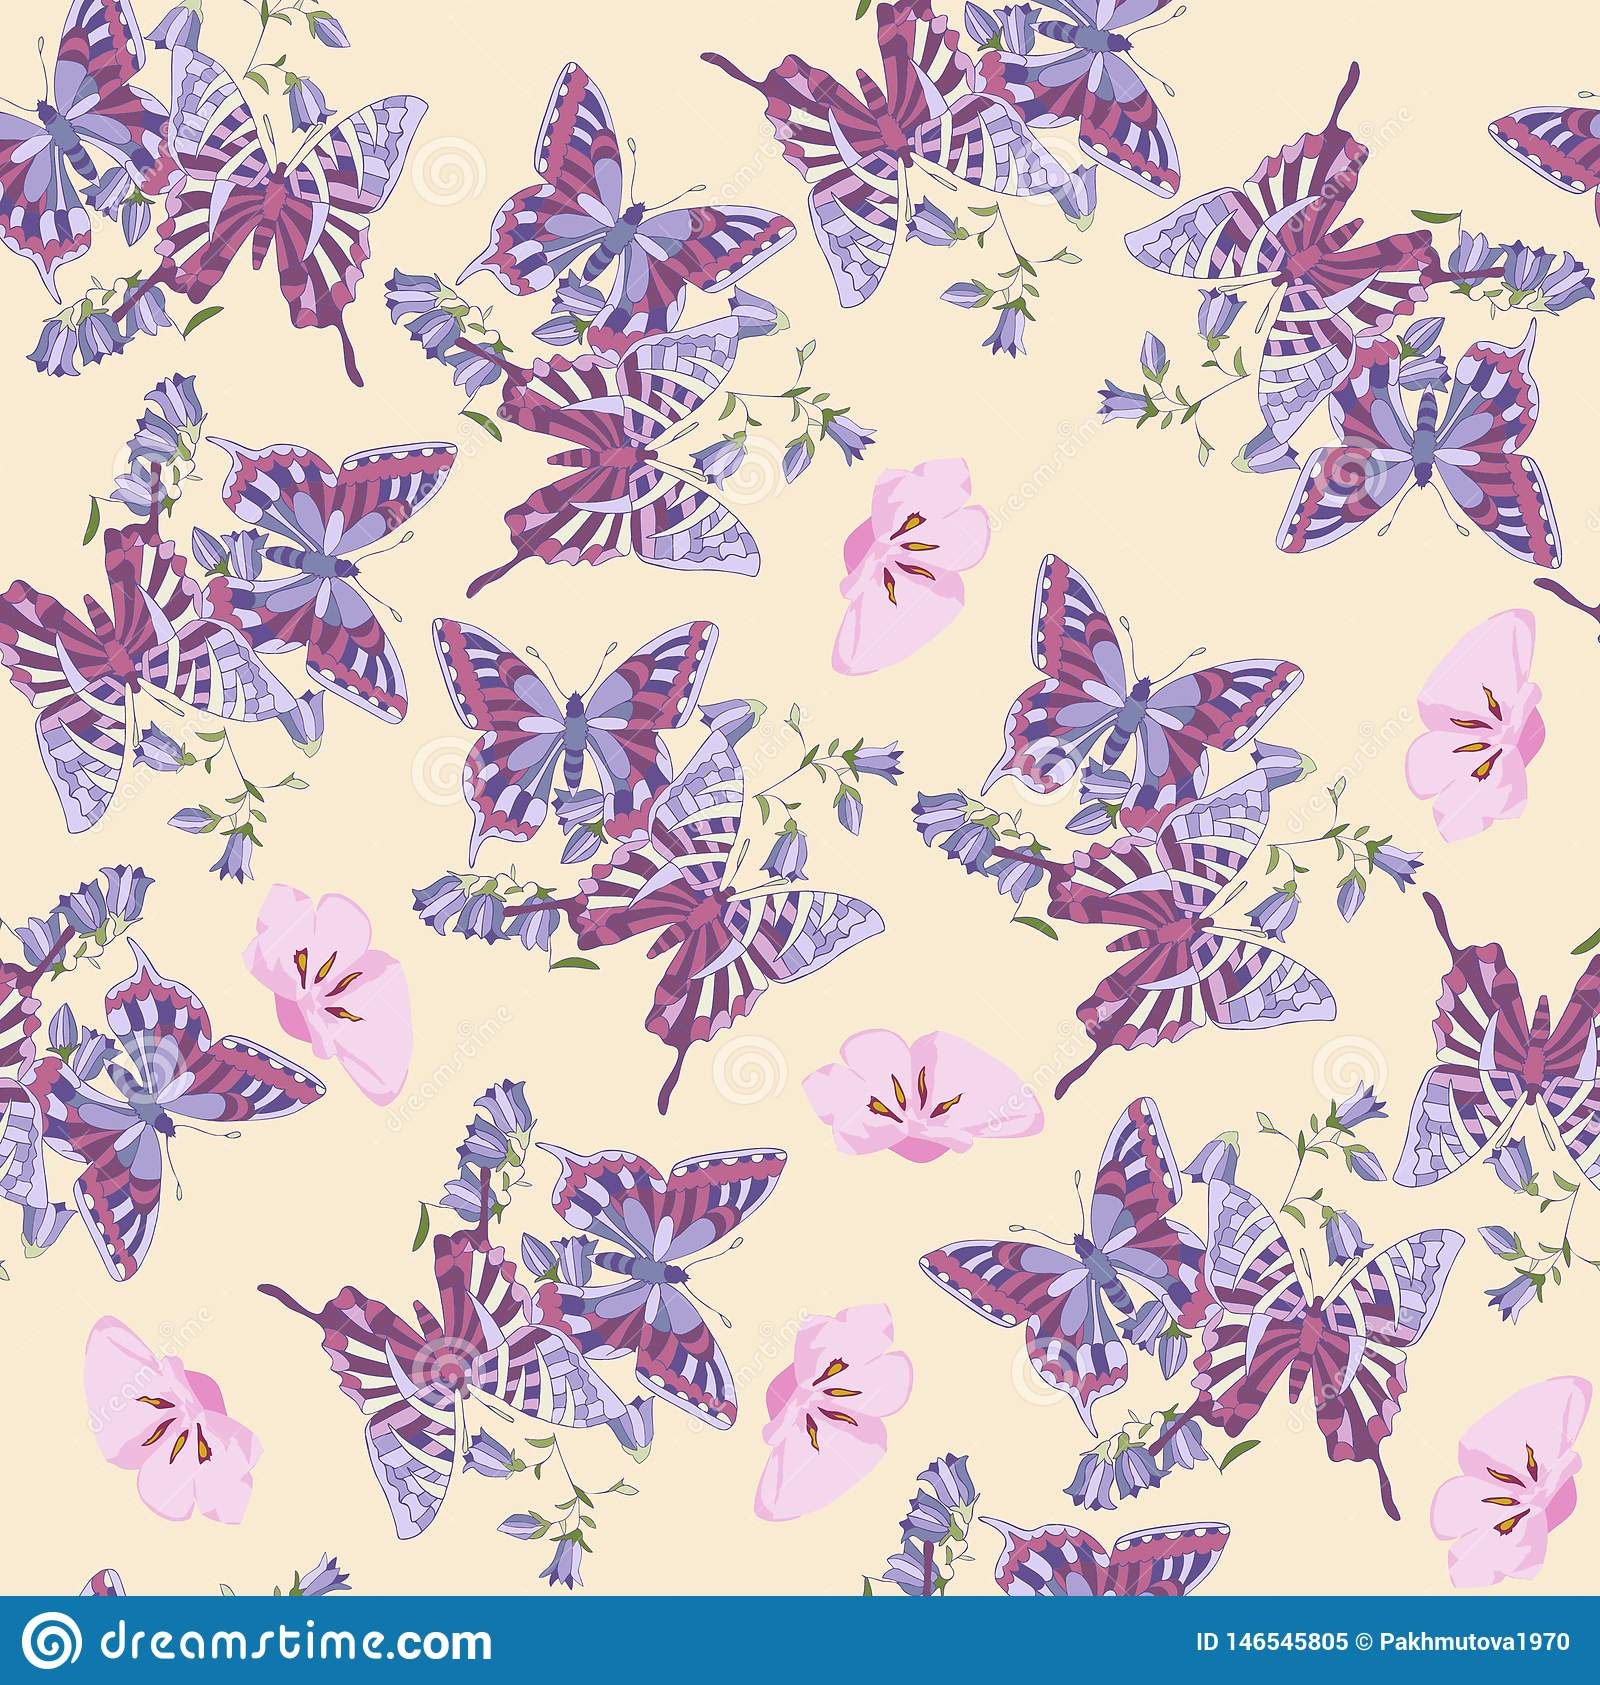 Pattern, flower, floral, seamless, abstract, butterfly, Wallpaper, decoration, pink, flowers, design, illustration, nature, white,